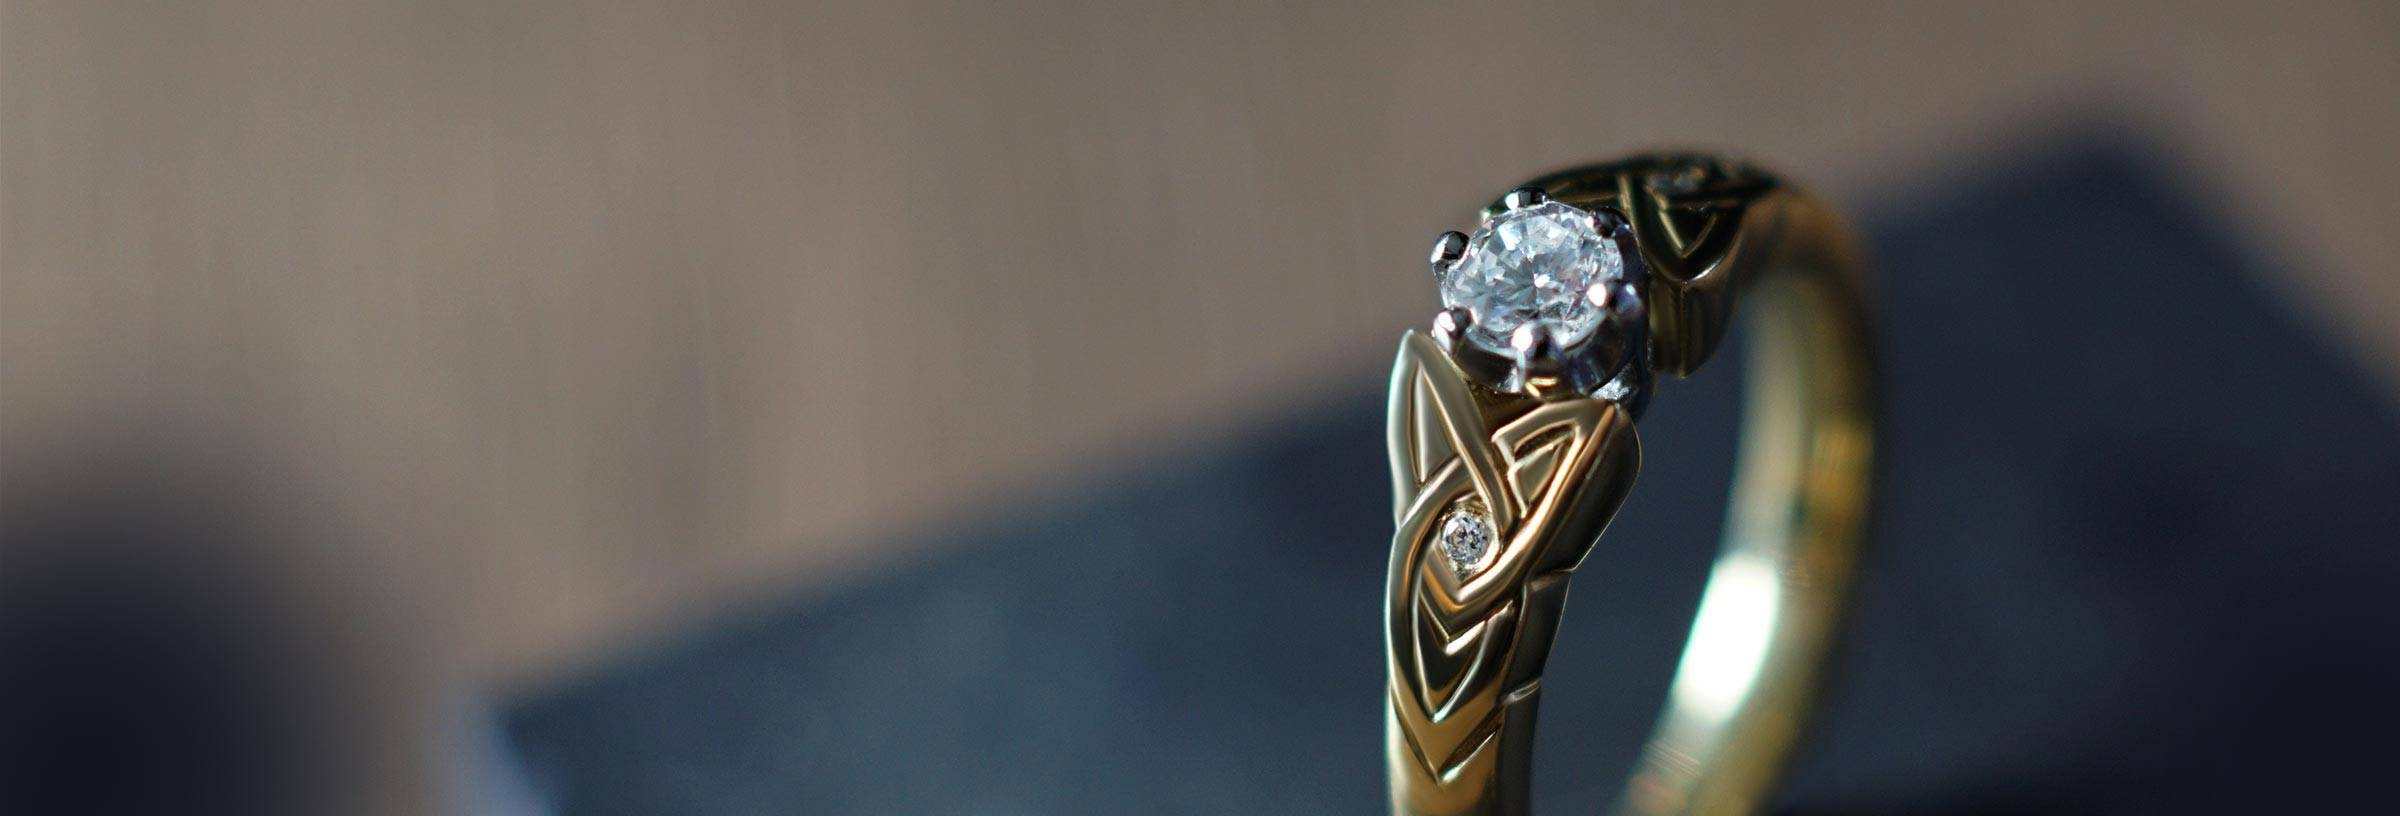 Celtic Engagement Rings | Harriet Kelsall Pertaining To Medieval Engagement Rings (Gallery 1 of 15)